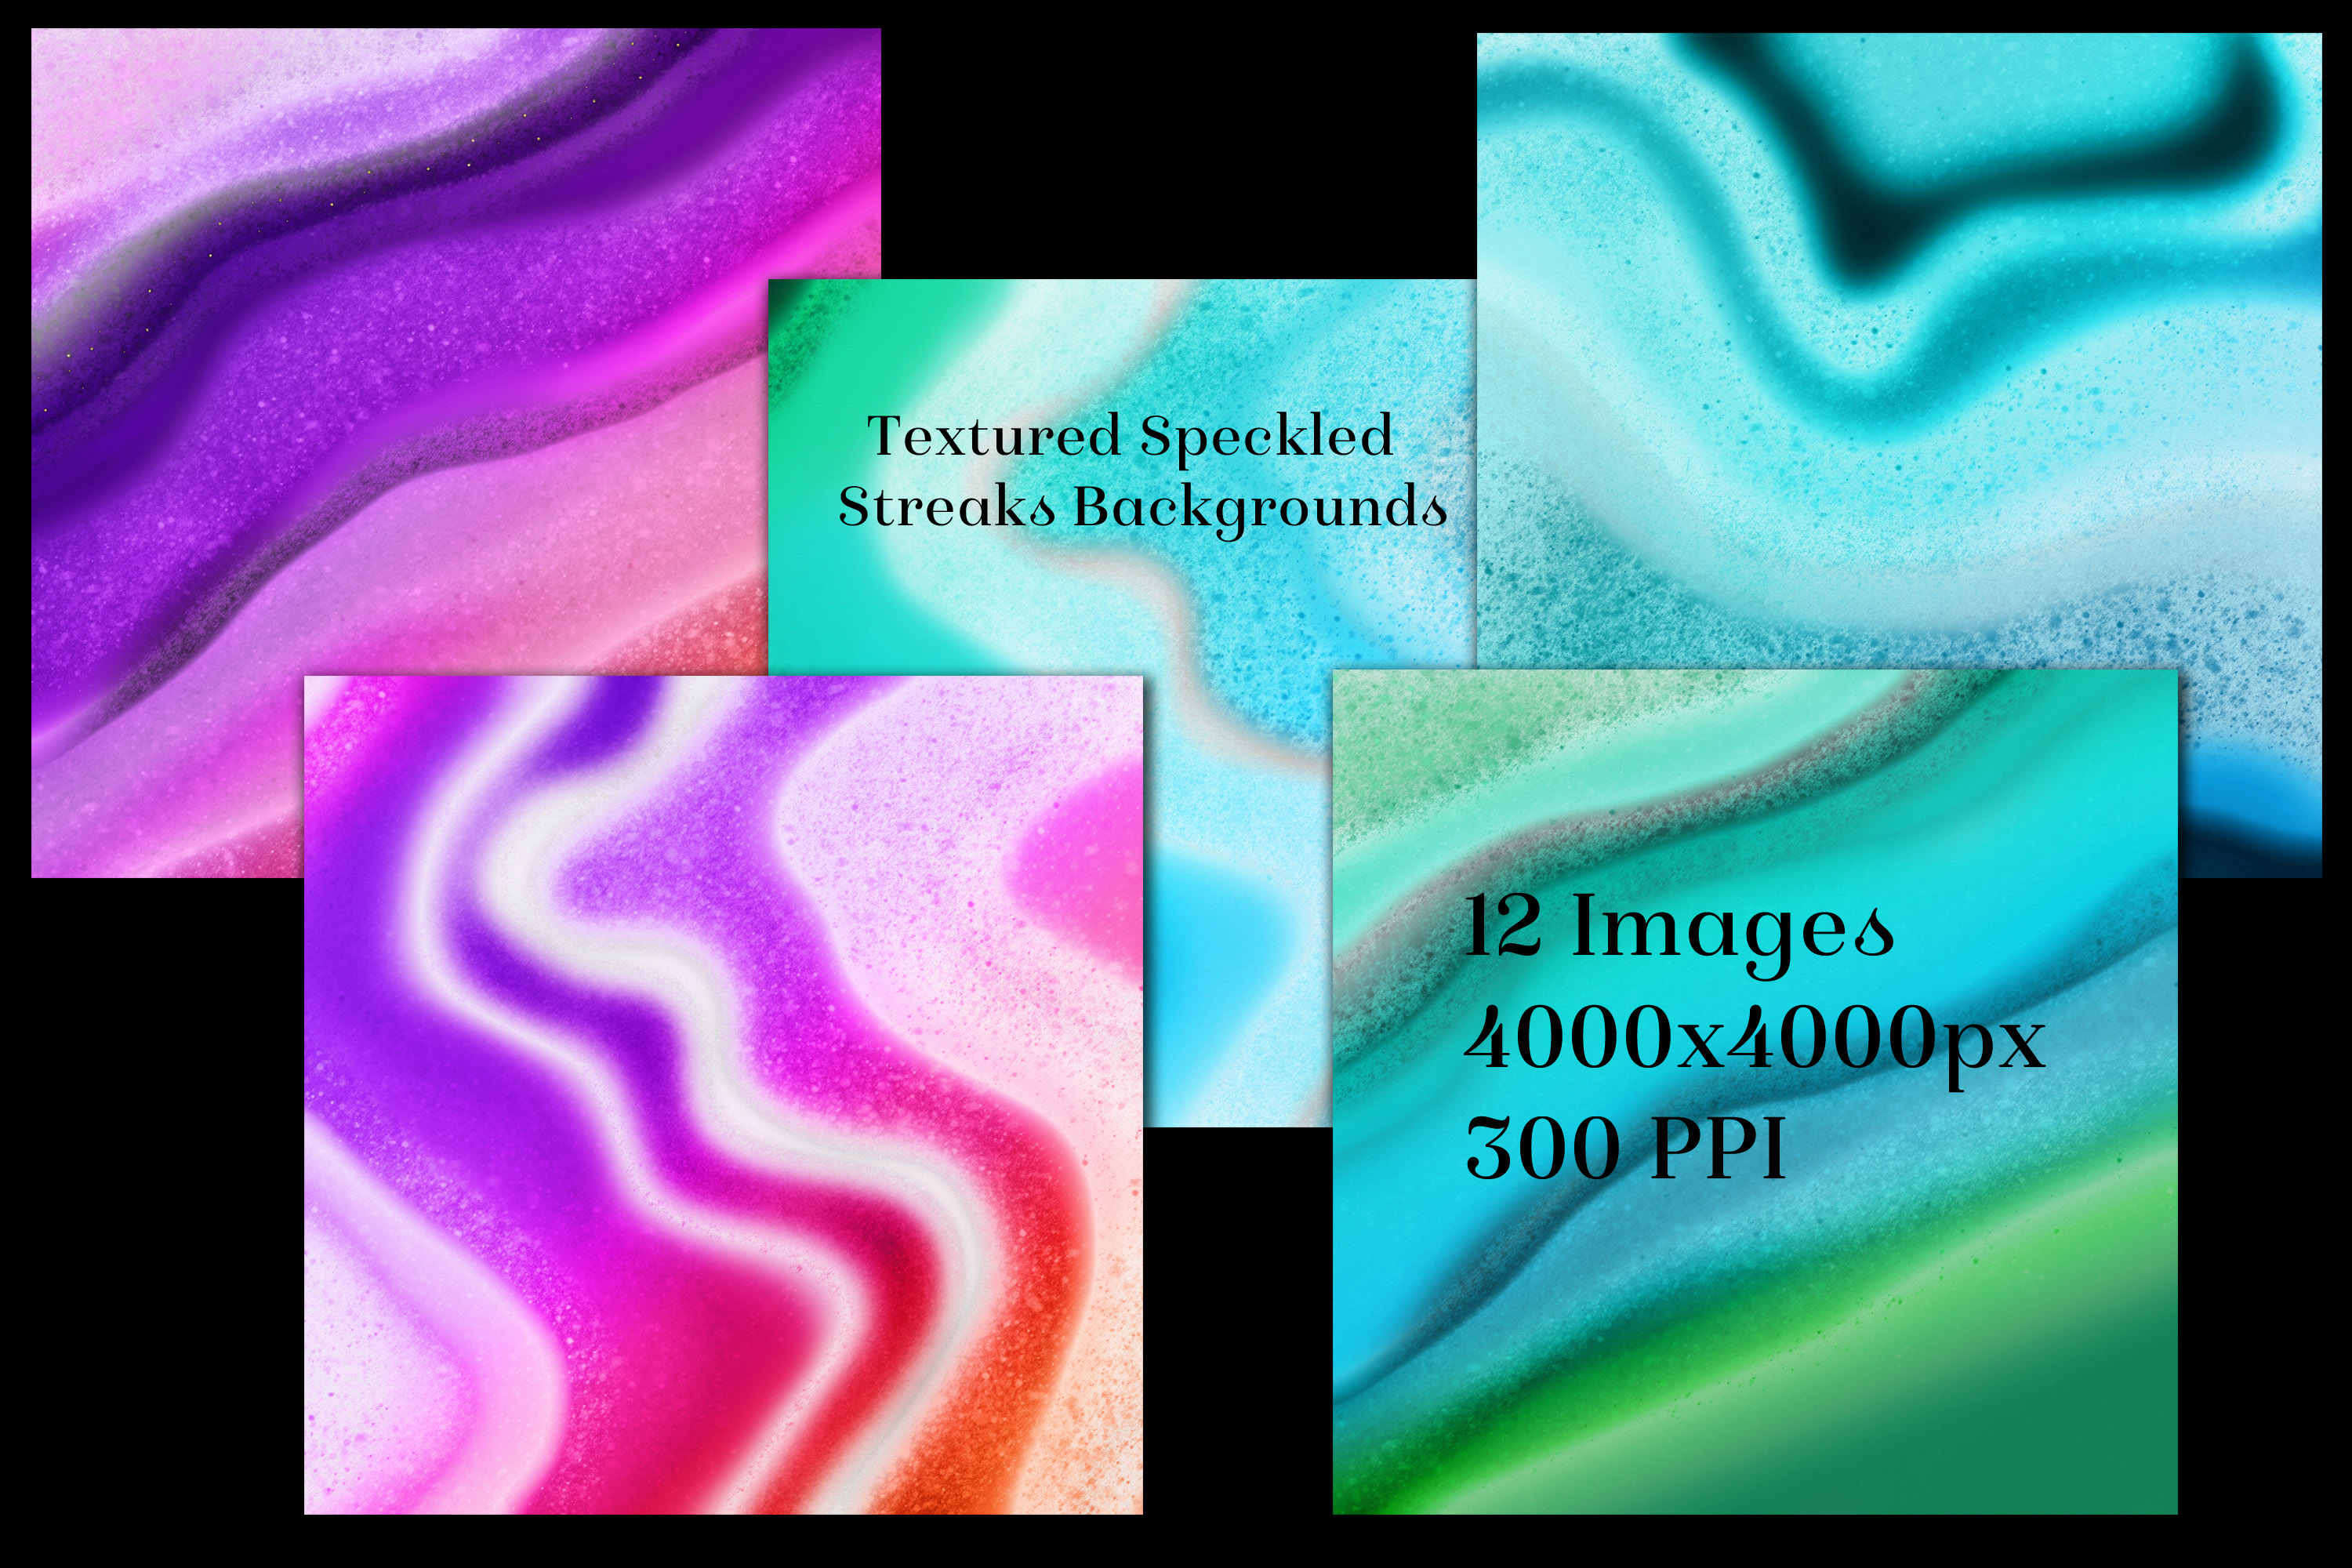 Textured Speckled Streaks Backgrounds - 12 Image Textures example image 2